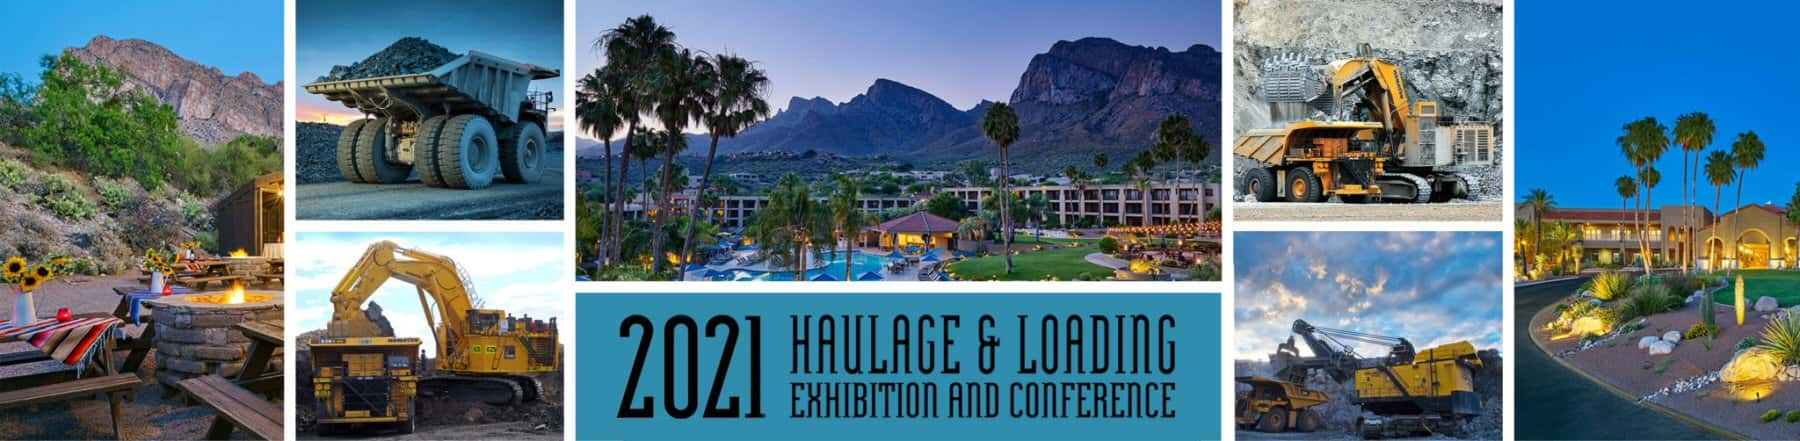 2021 Haulage & Loading Exhibition and Conference